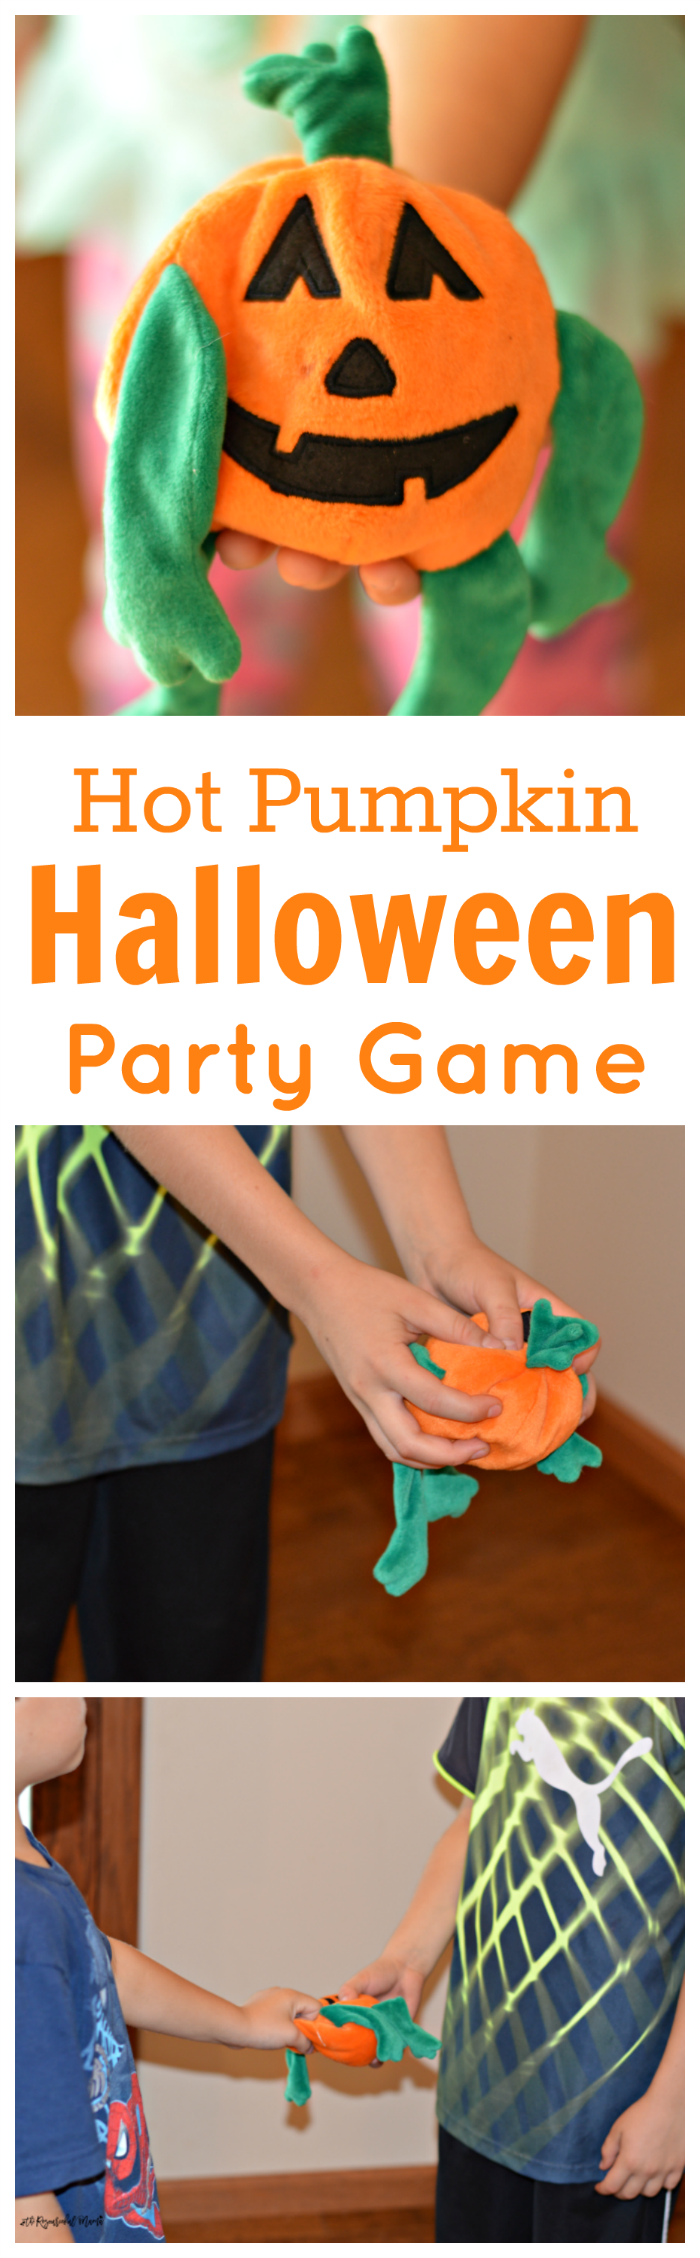 Hot Pumpkin Halloween Party Game - The Resourceful Mama